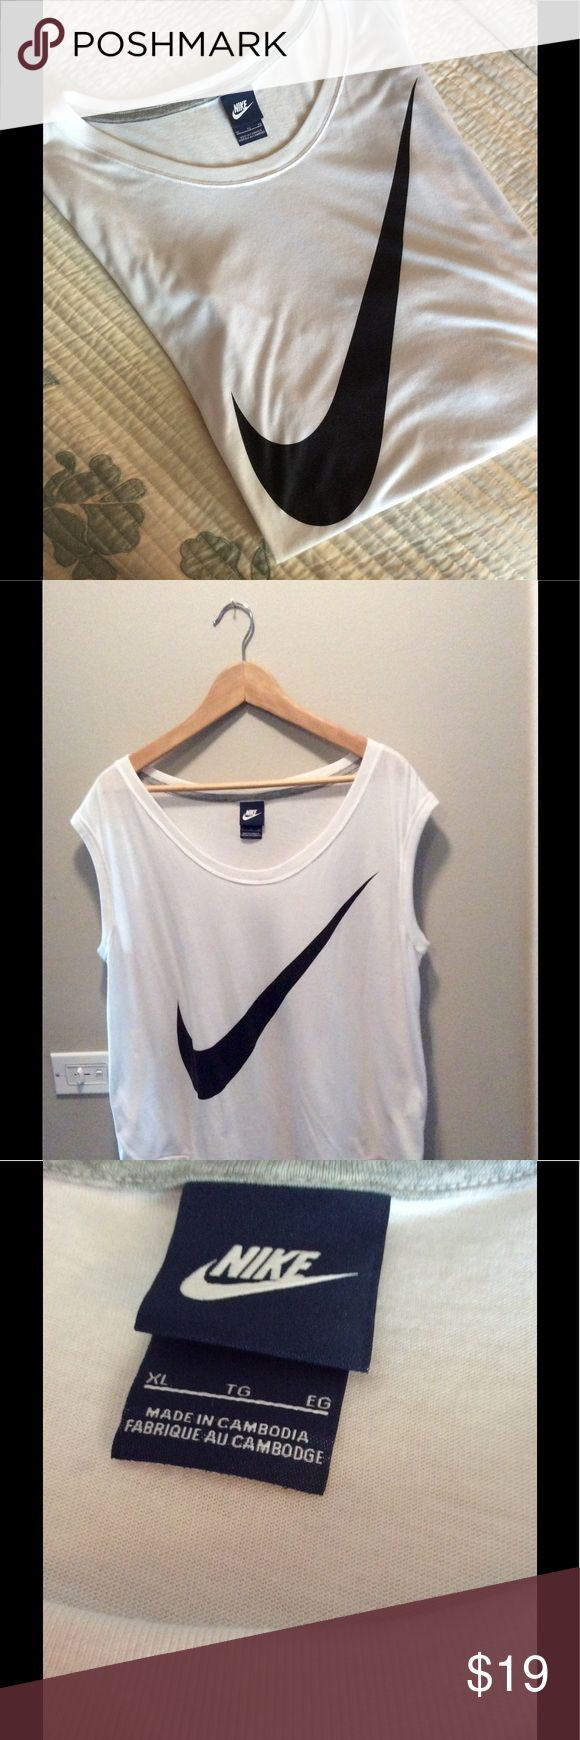 NIKE sleeveless white T shirt with logo Very soft material